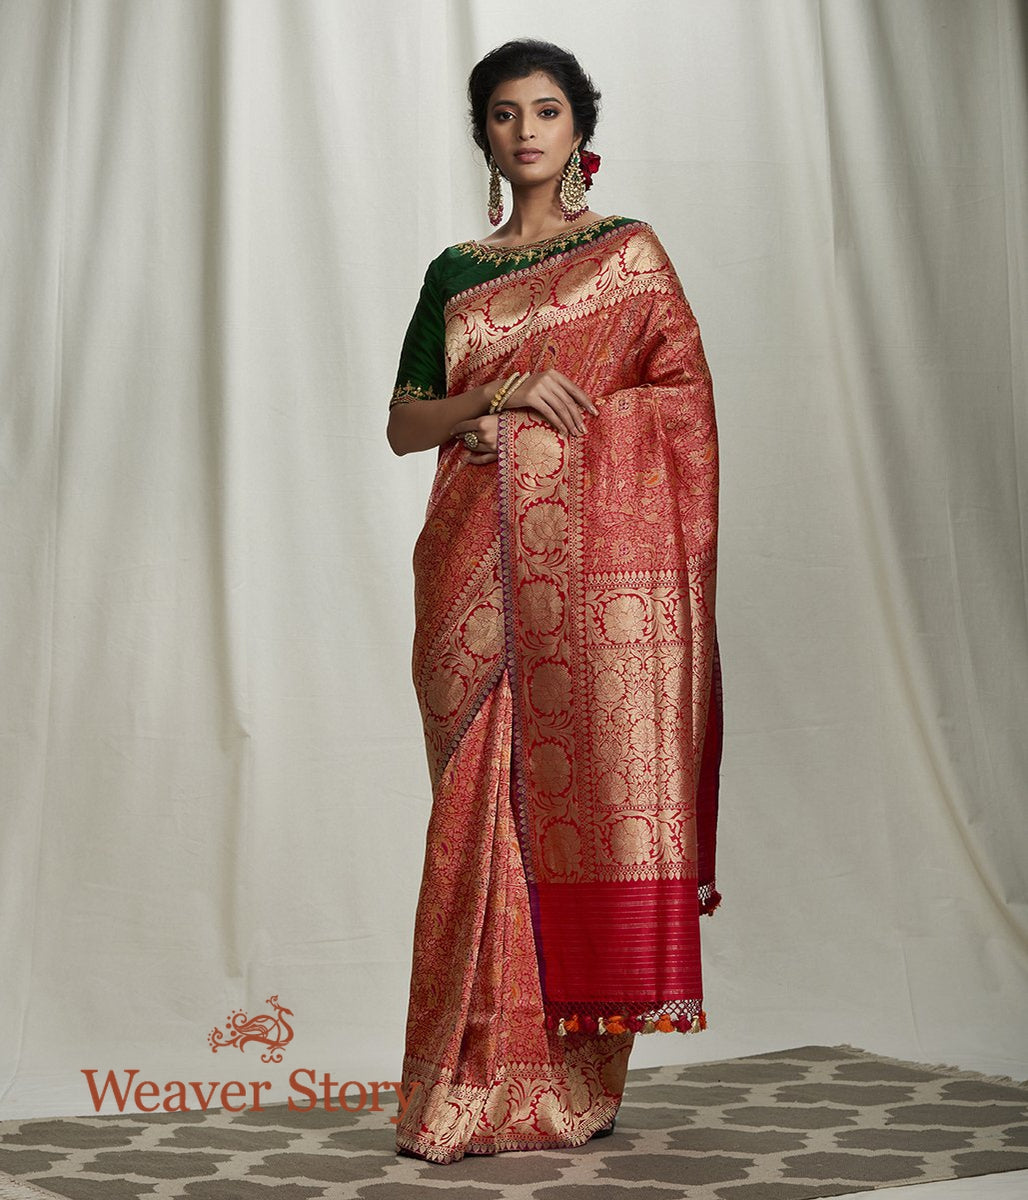 Handwoven Red Kimkhab Saree with Meenakari